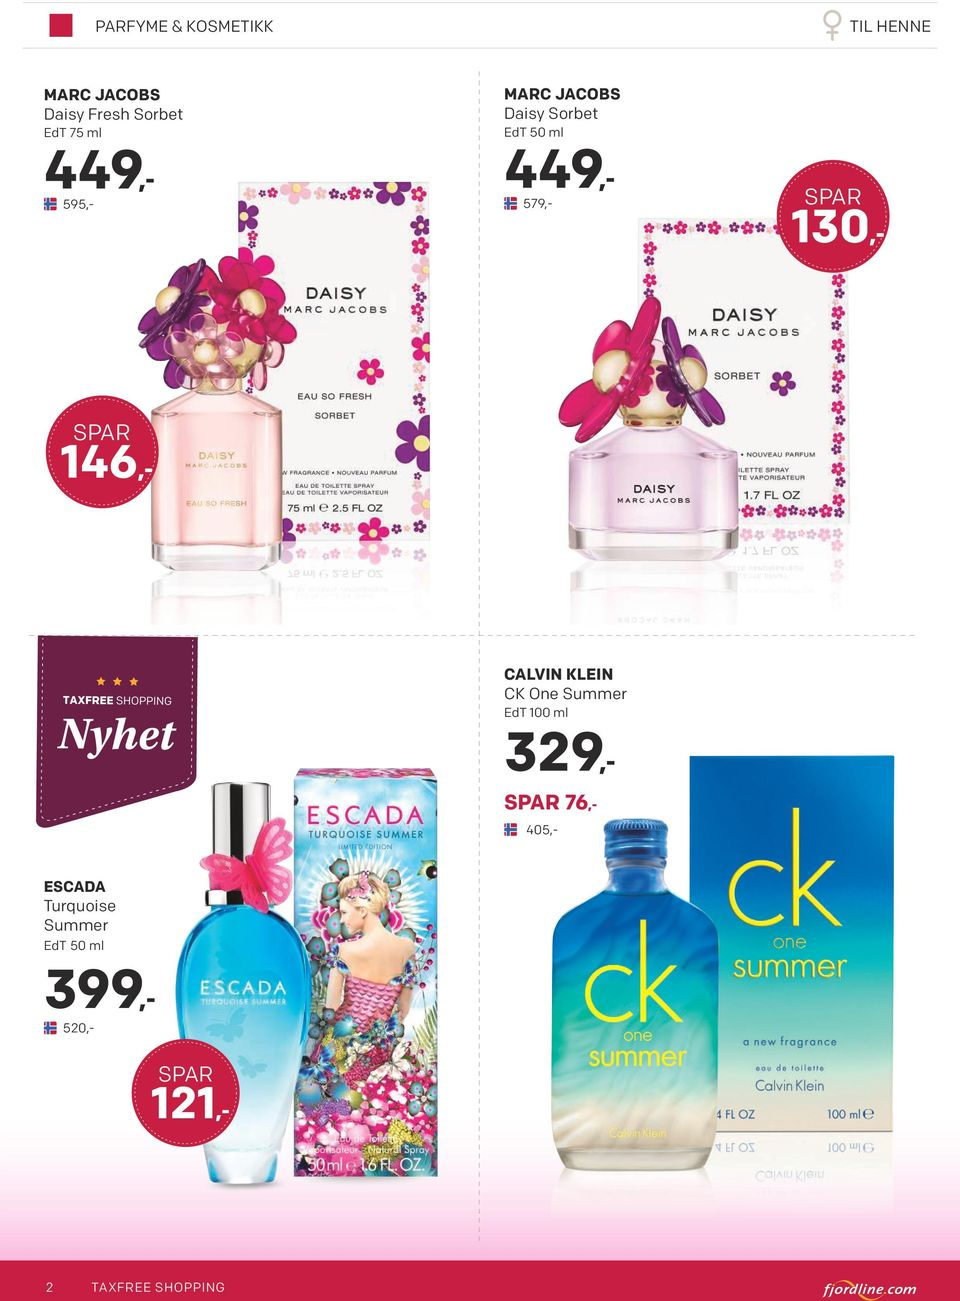 Summer EdT 100 ml 329,- ESCADA Turquoise Summer EdT 50 ml 76,-